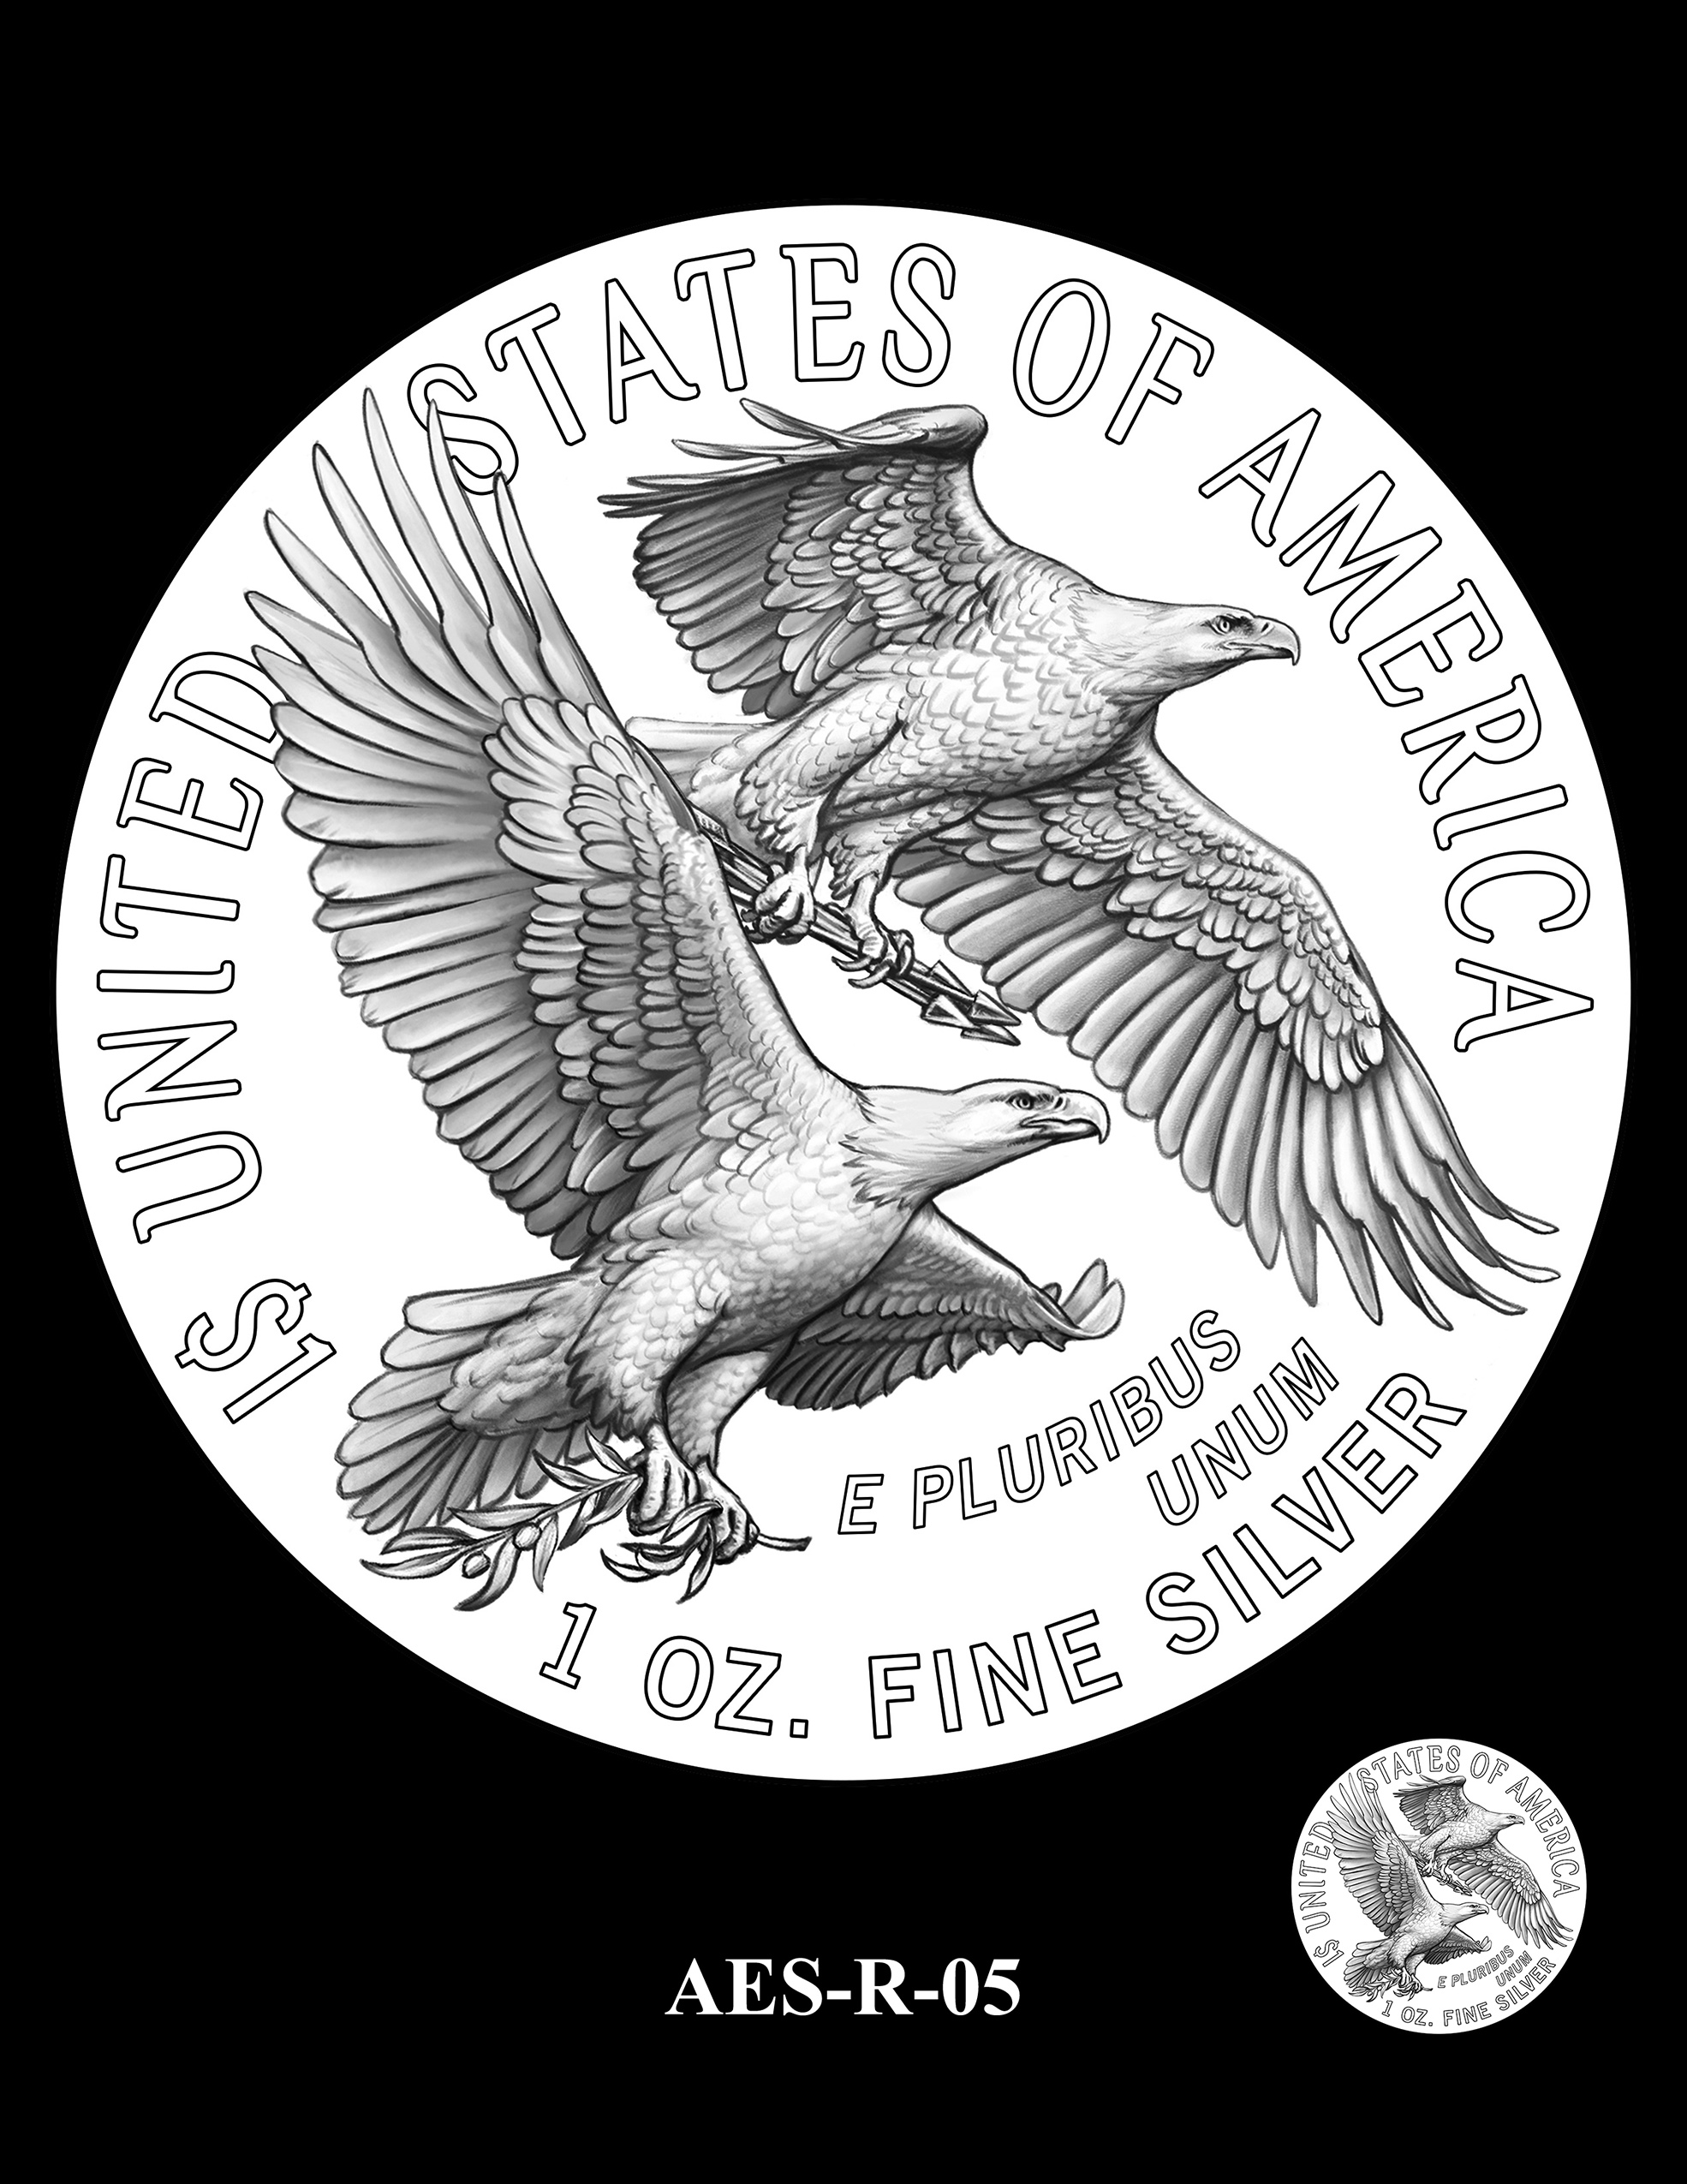 AES-R-05 -- American Eagle Proof and Bullion Silver Coin - Reverse